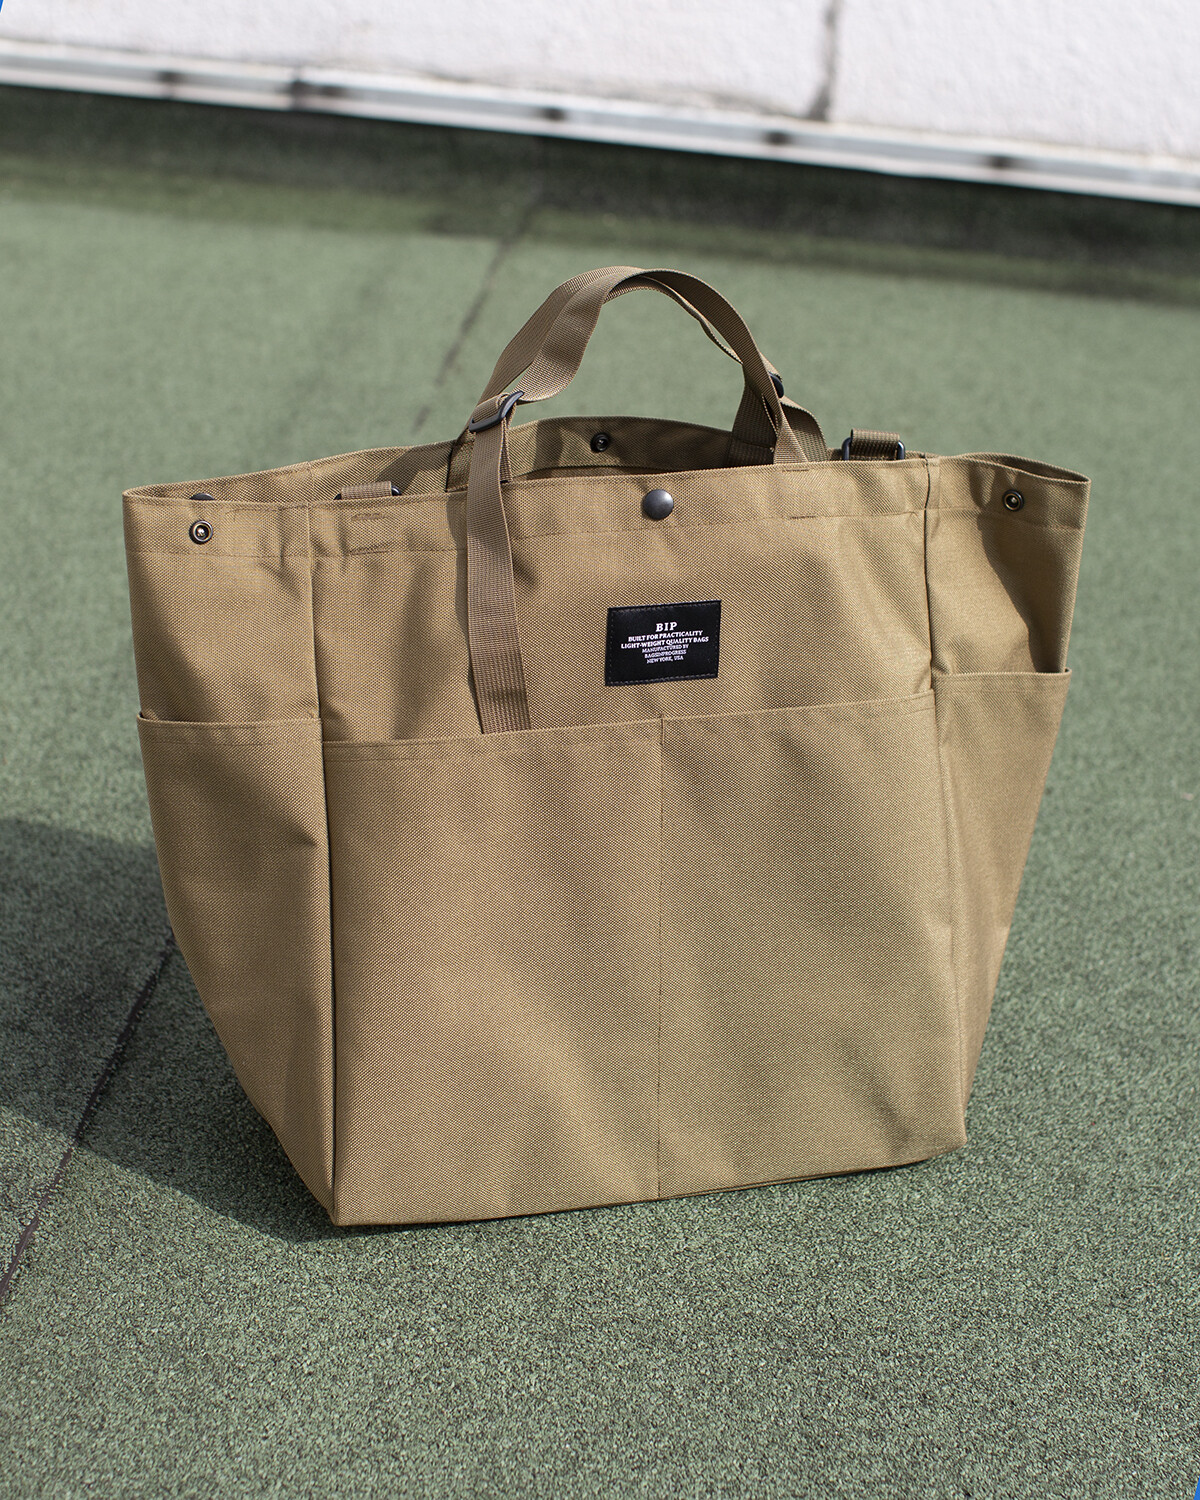 BIP CARRY-ALL BEACH BAG IN BEIGE